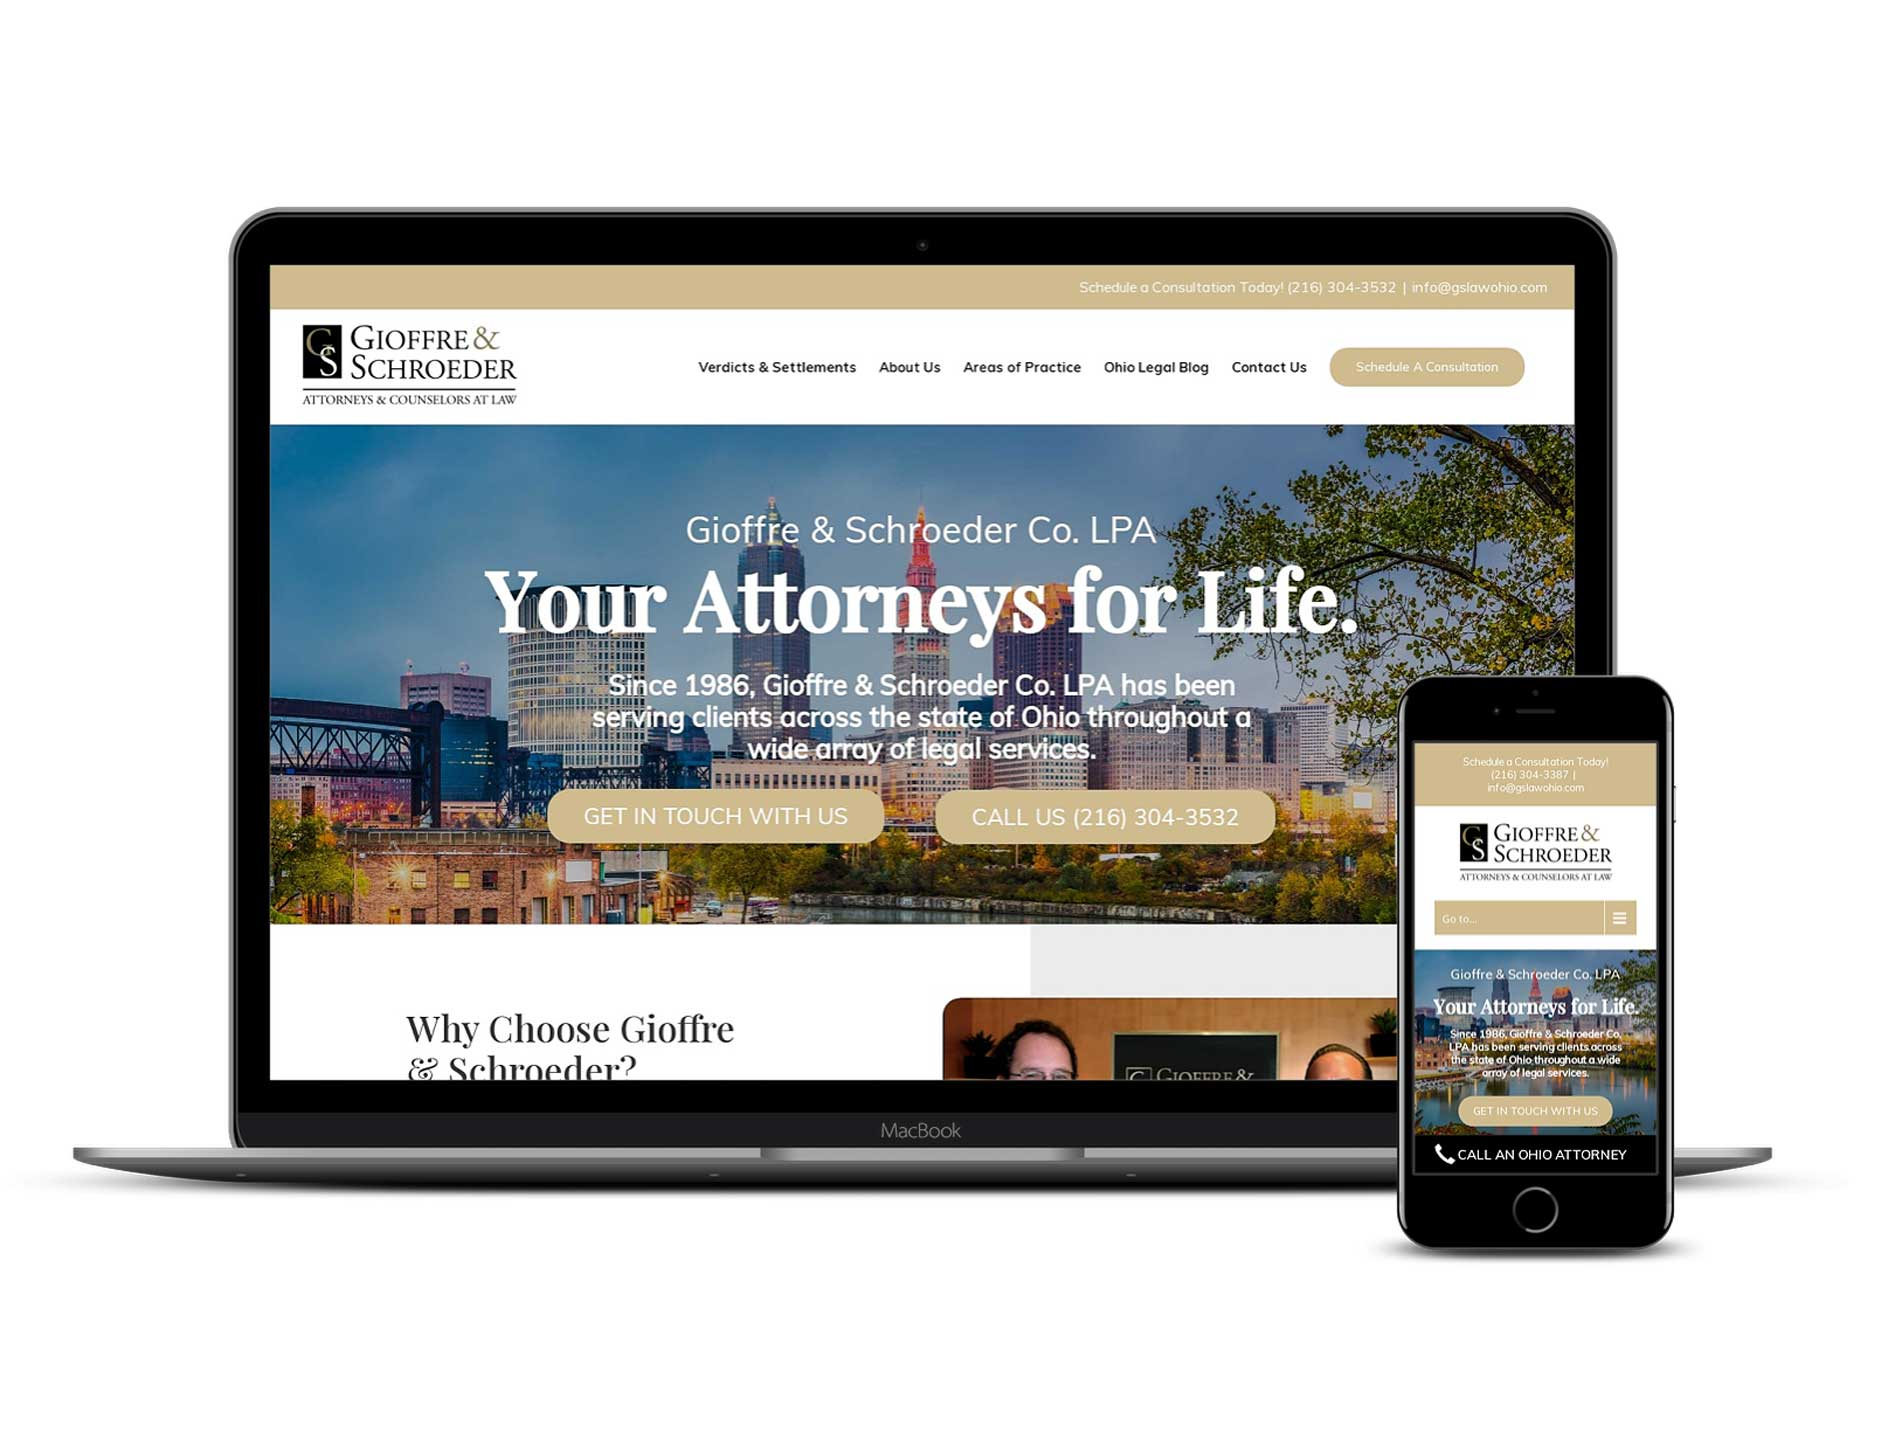 Gioffre & Schroeder Law Ohio Website Design Mobile Optimization and laptop